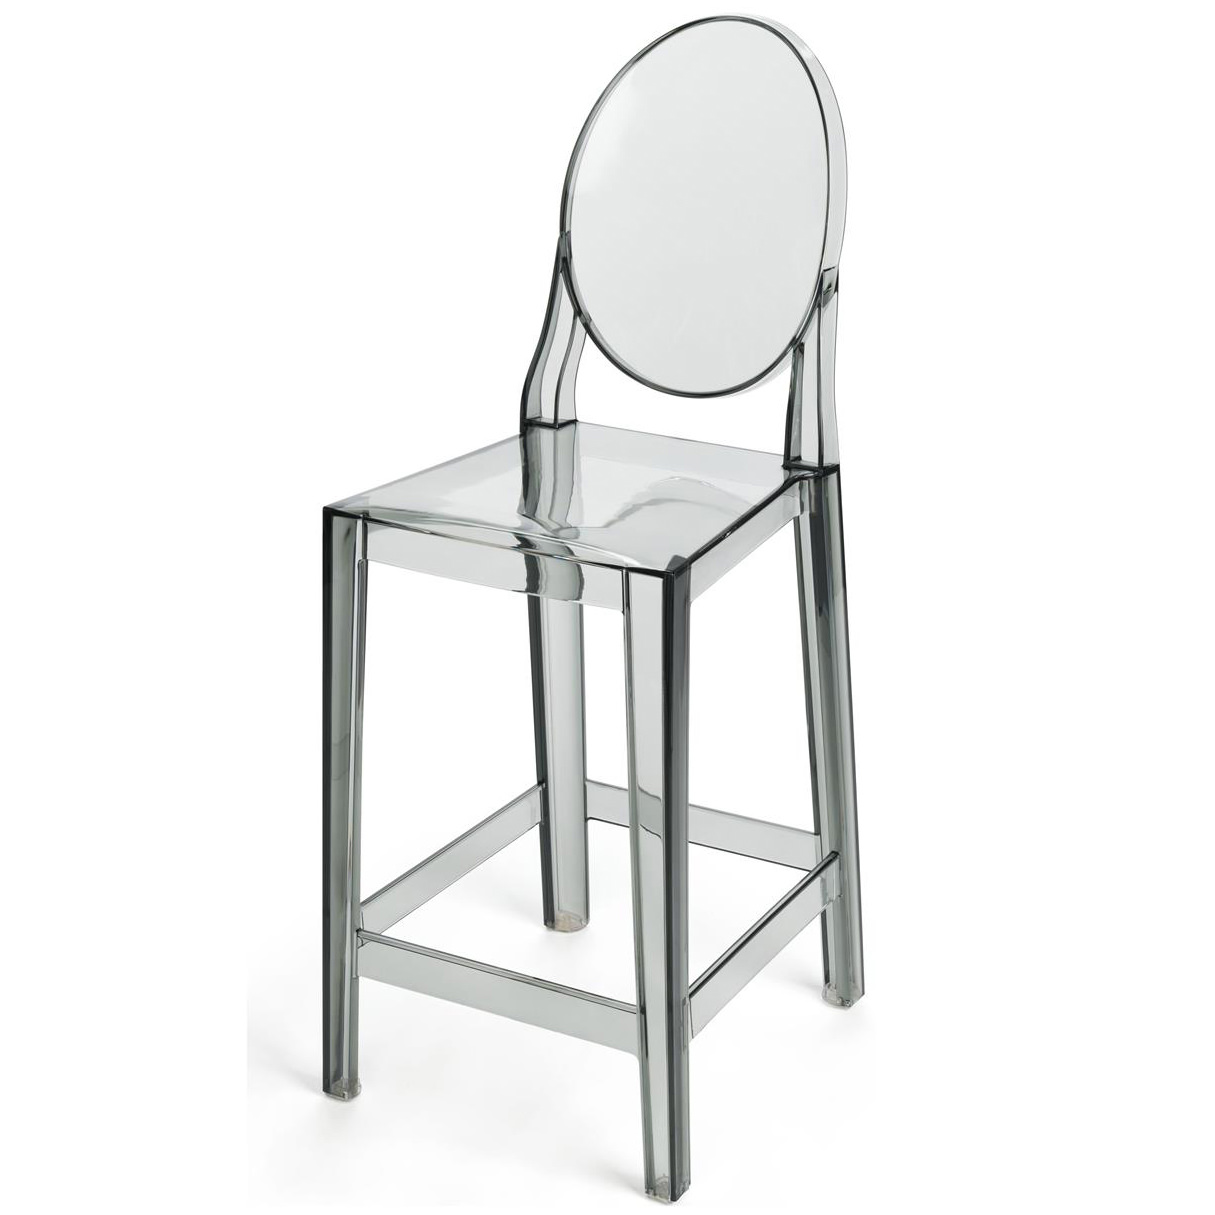 ghost chair bar stool karlstad slipcover 2xhome 25 seat height smoke contemporary modern glam barstool side chairs molded plastic counter accent lounge no